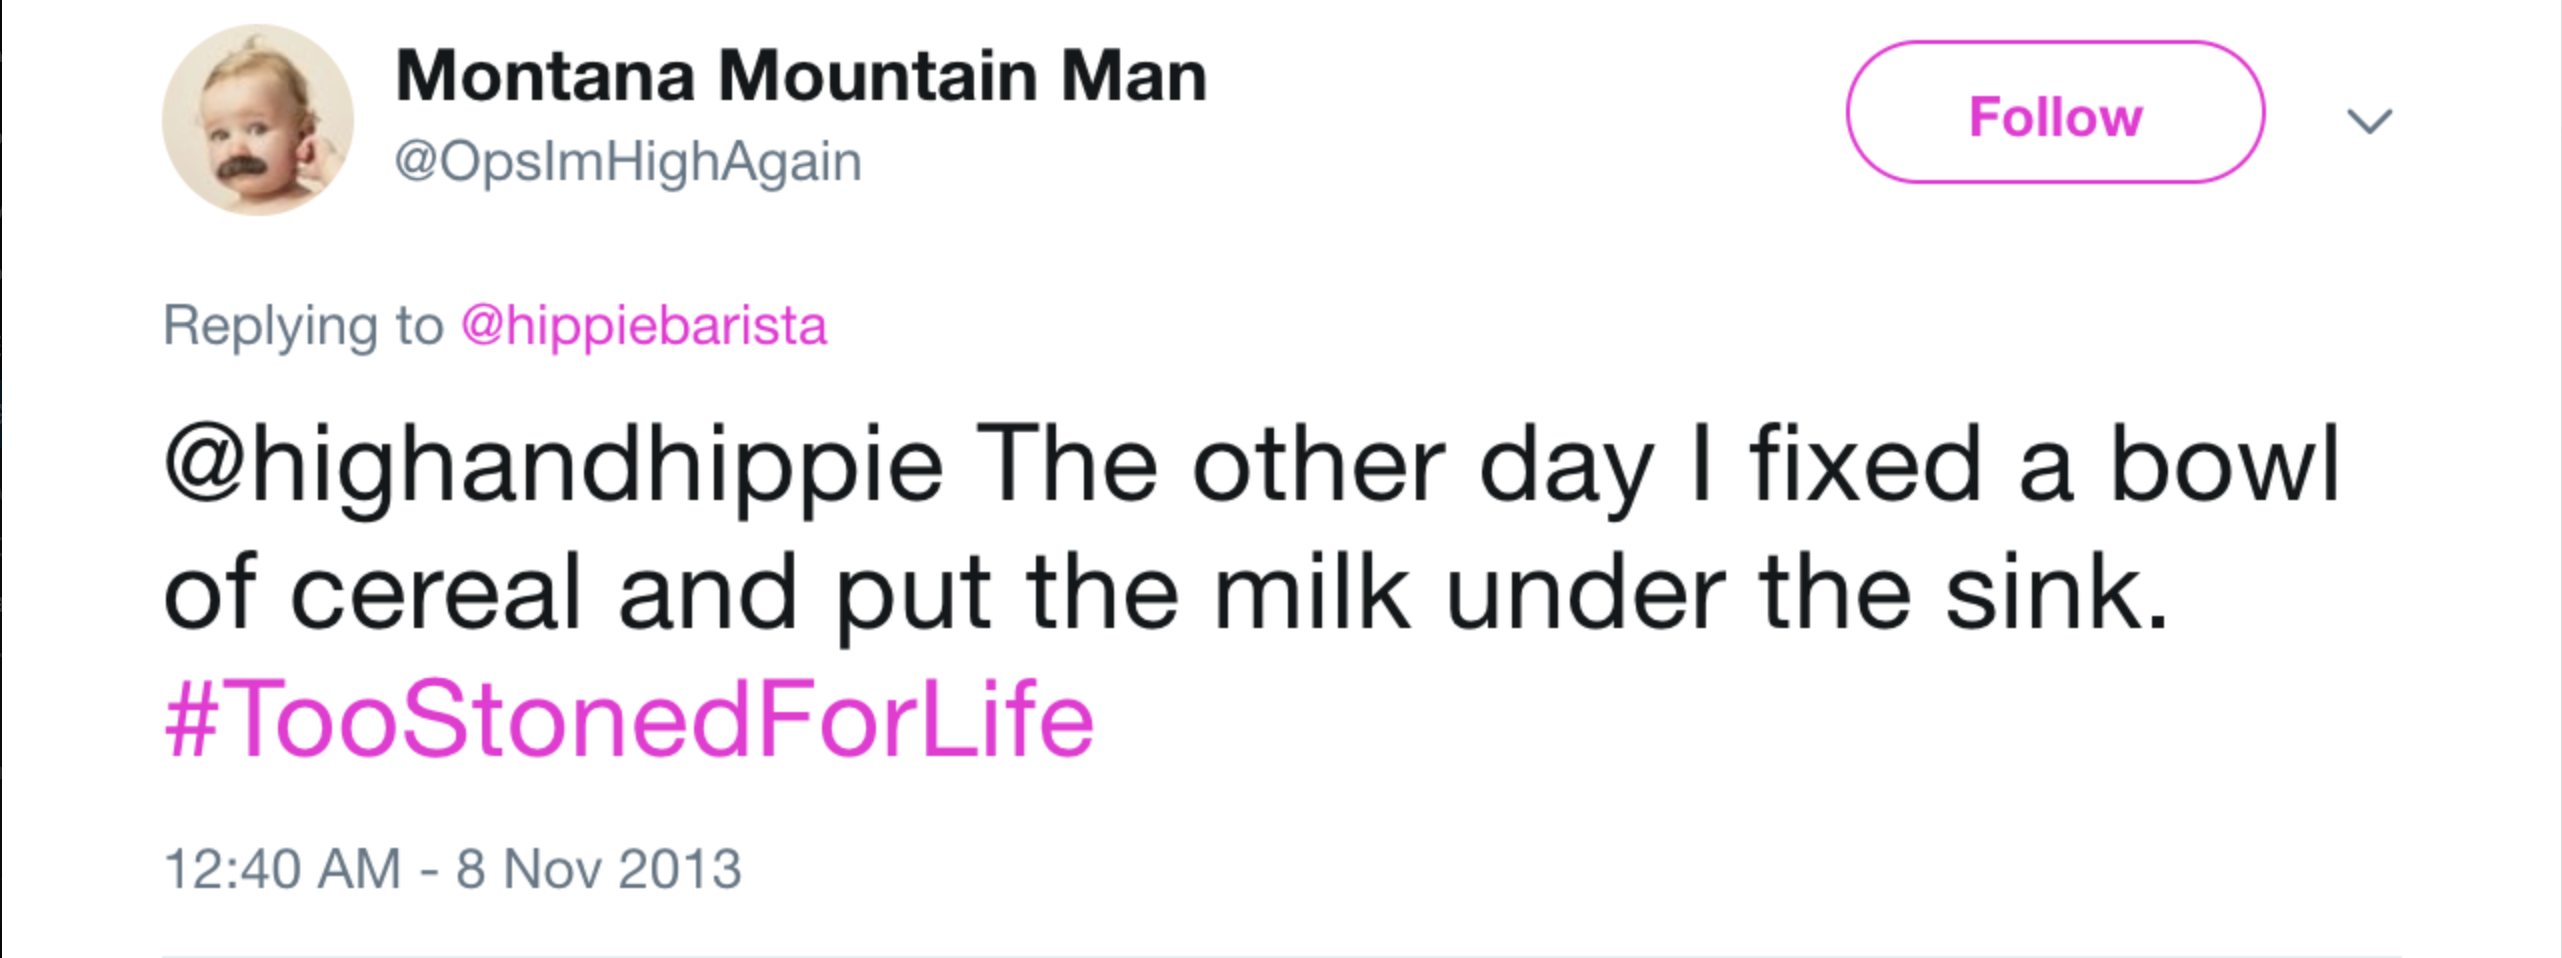 But Where Does The Milk Go?